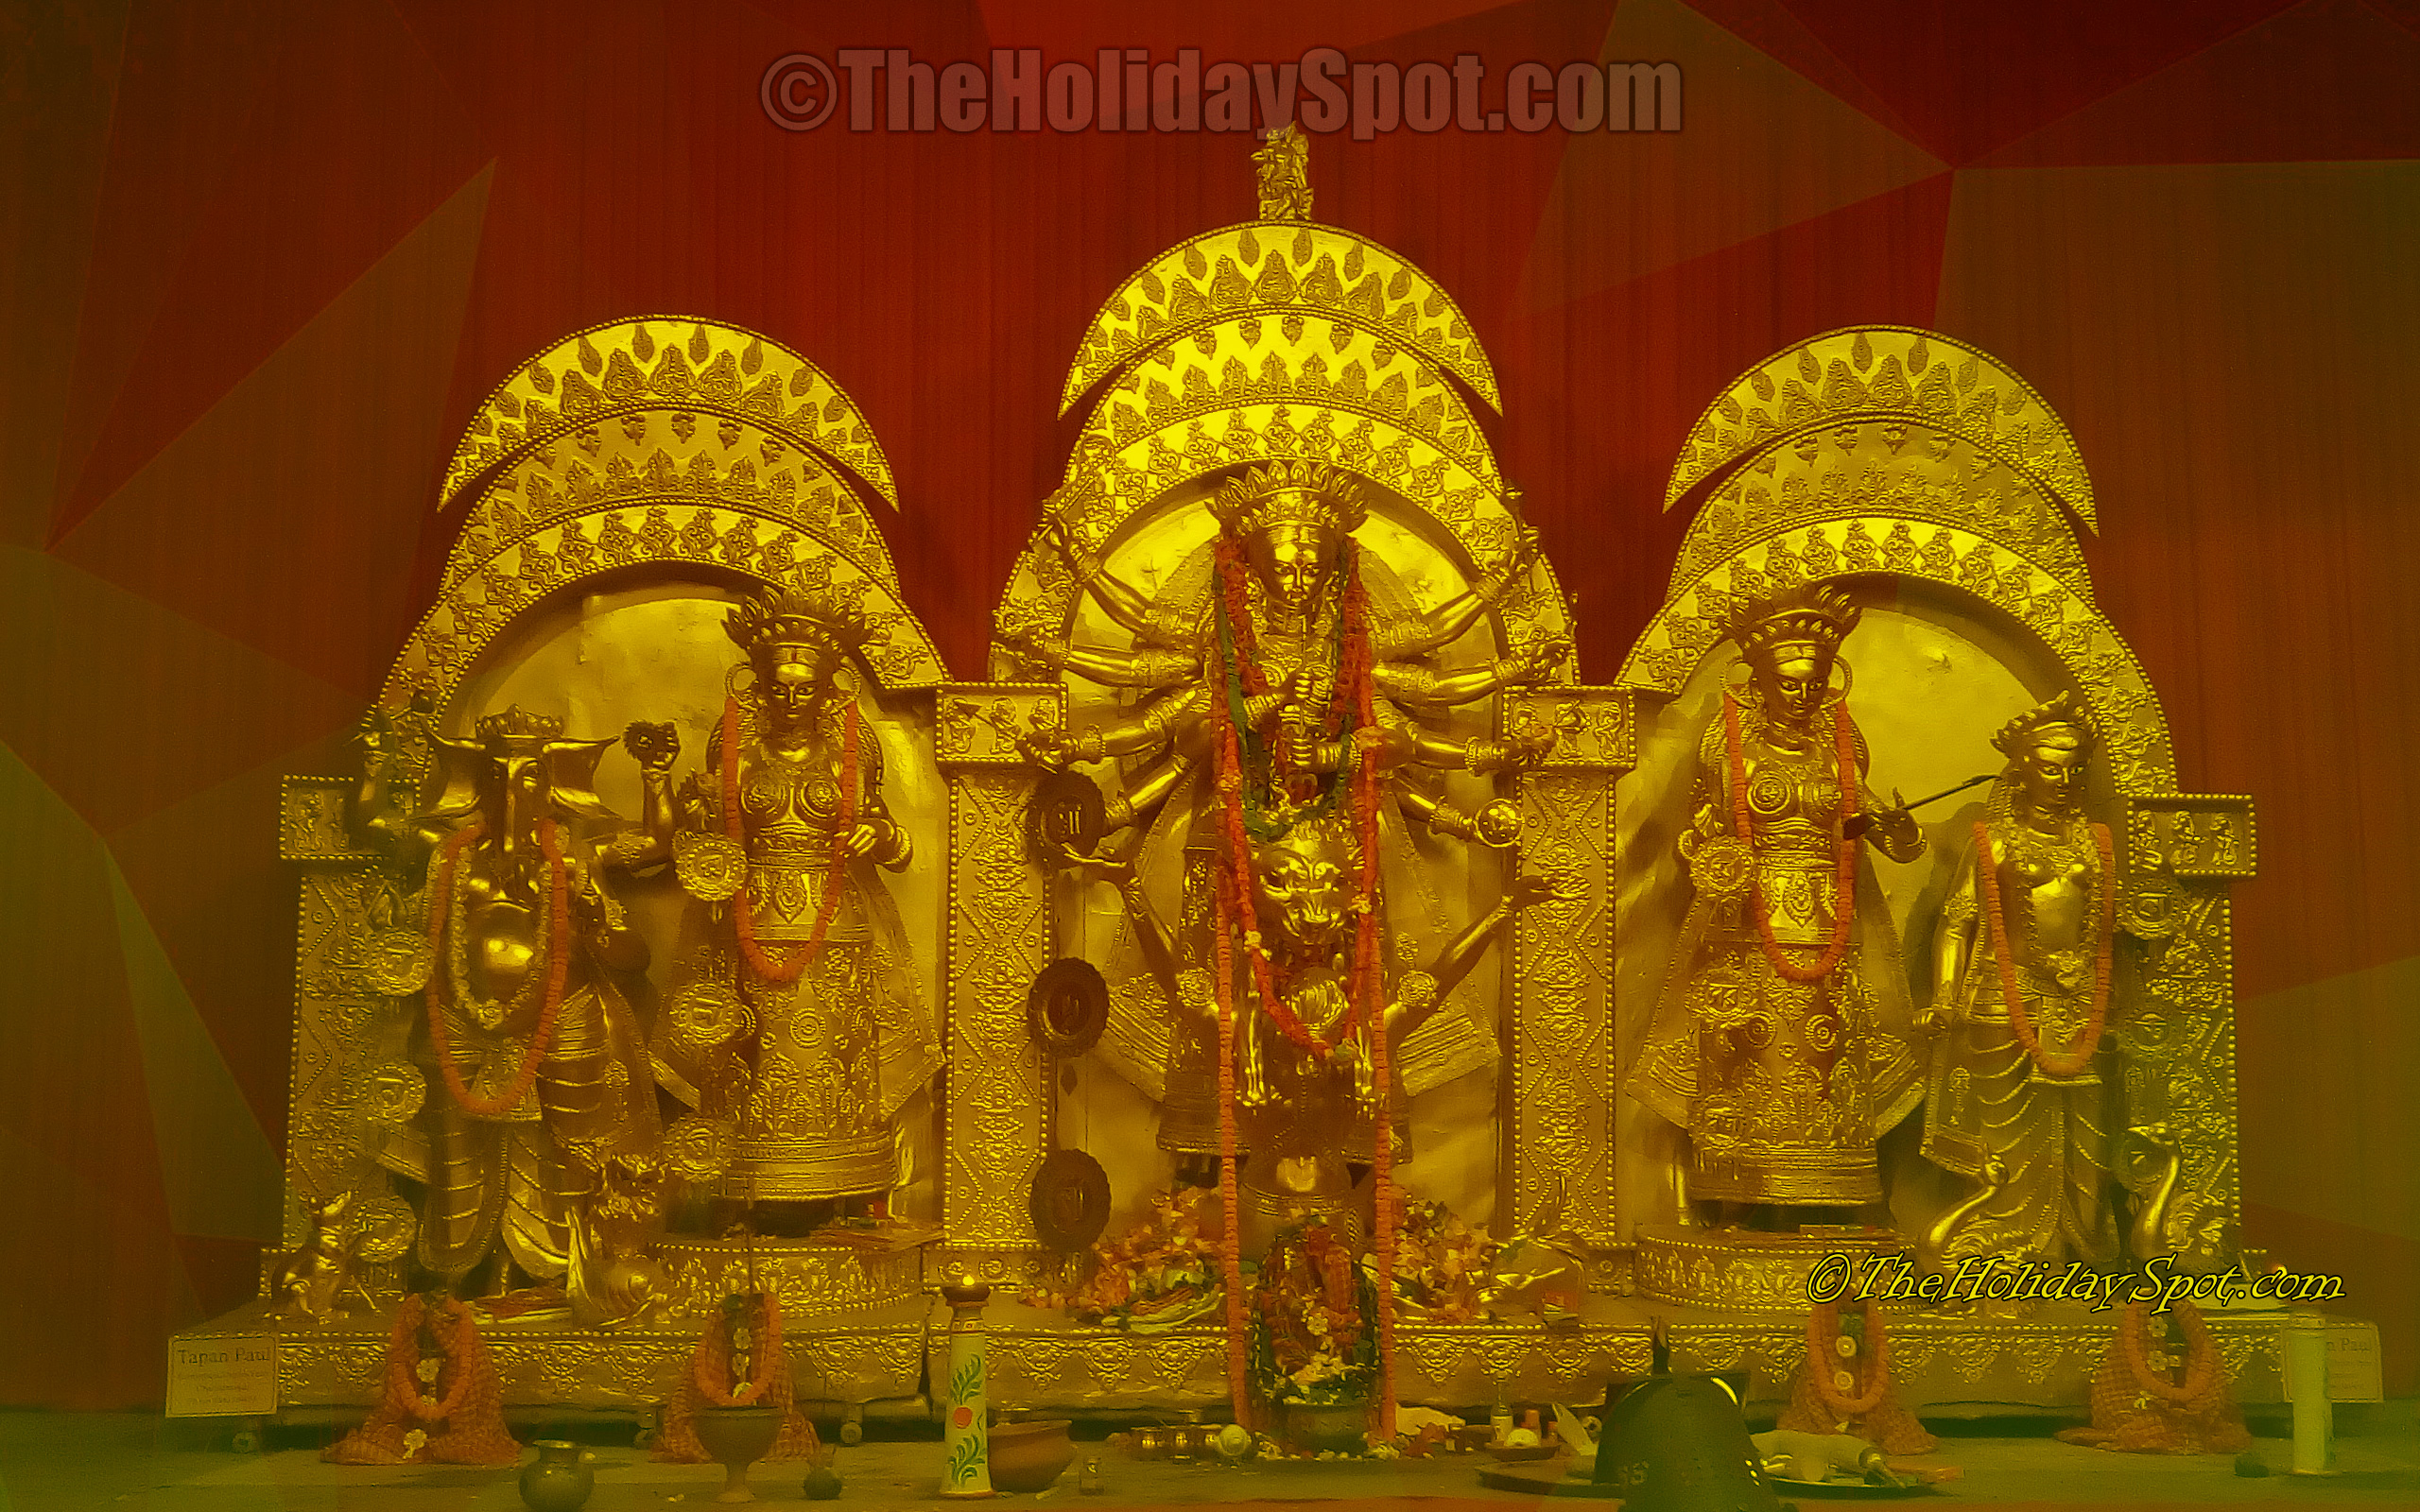 Durga puja wallpapers its free download now durga puja images wallpaper idol of maa durga and her family altavistaventures Choice Image